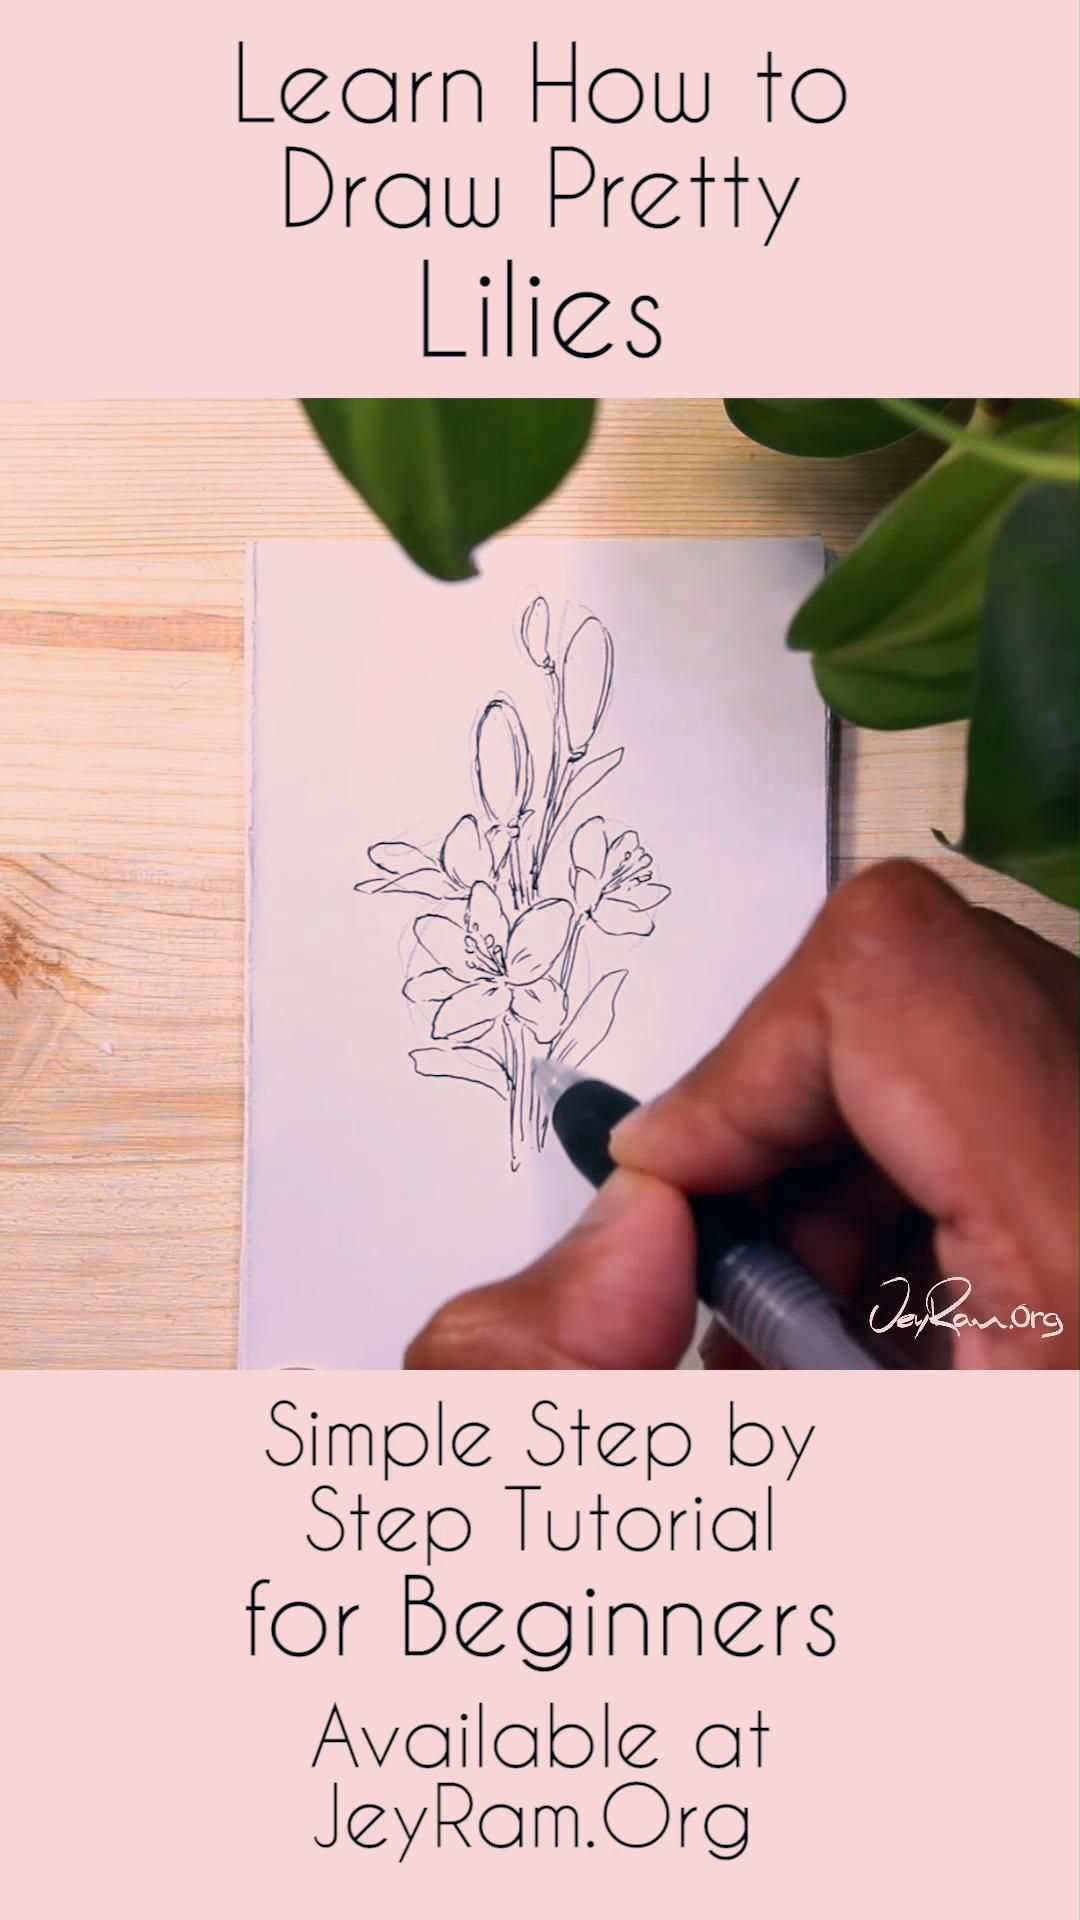 Hey! I'm on a mission to share my joy for drawing with people that have never drawn before. I have created these step by step flower drawing tutorials for beginners to help people get started :D Help me on this mission by sharing the post with someone who you think would want to try it! Floral drawings are great for bullet journals and homemade cards. People just love receiving a hand-drawn card that has beautiful flowers on them. Let's draw some flowers together ♡ #youtube #tutorial #flower